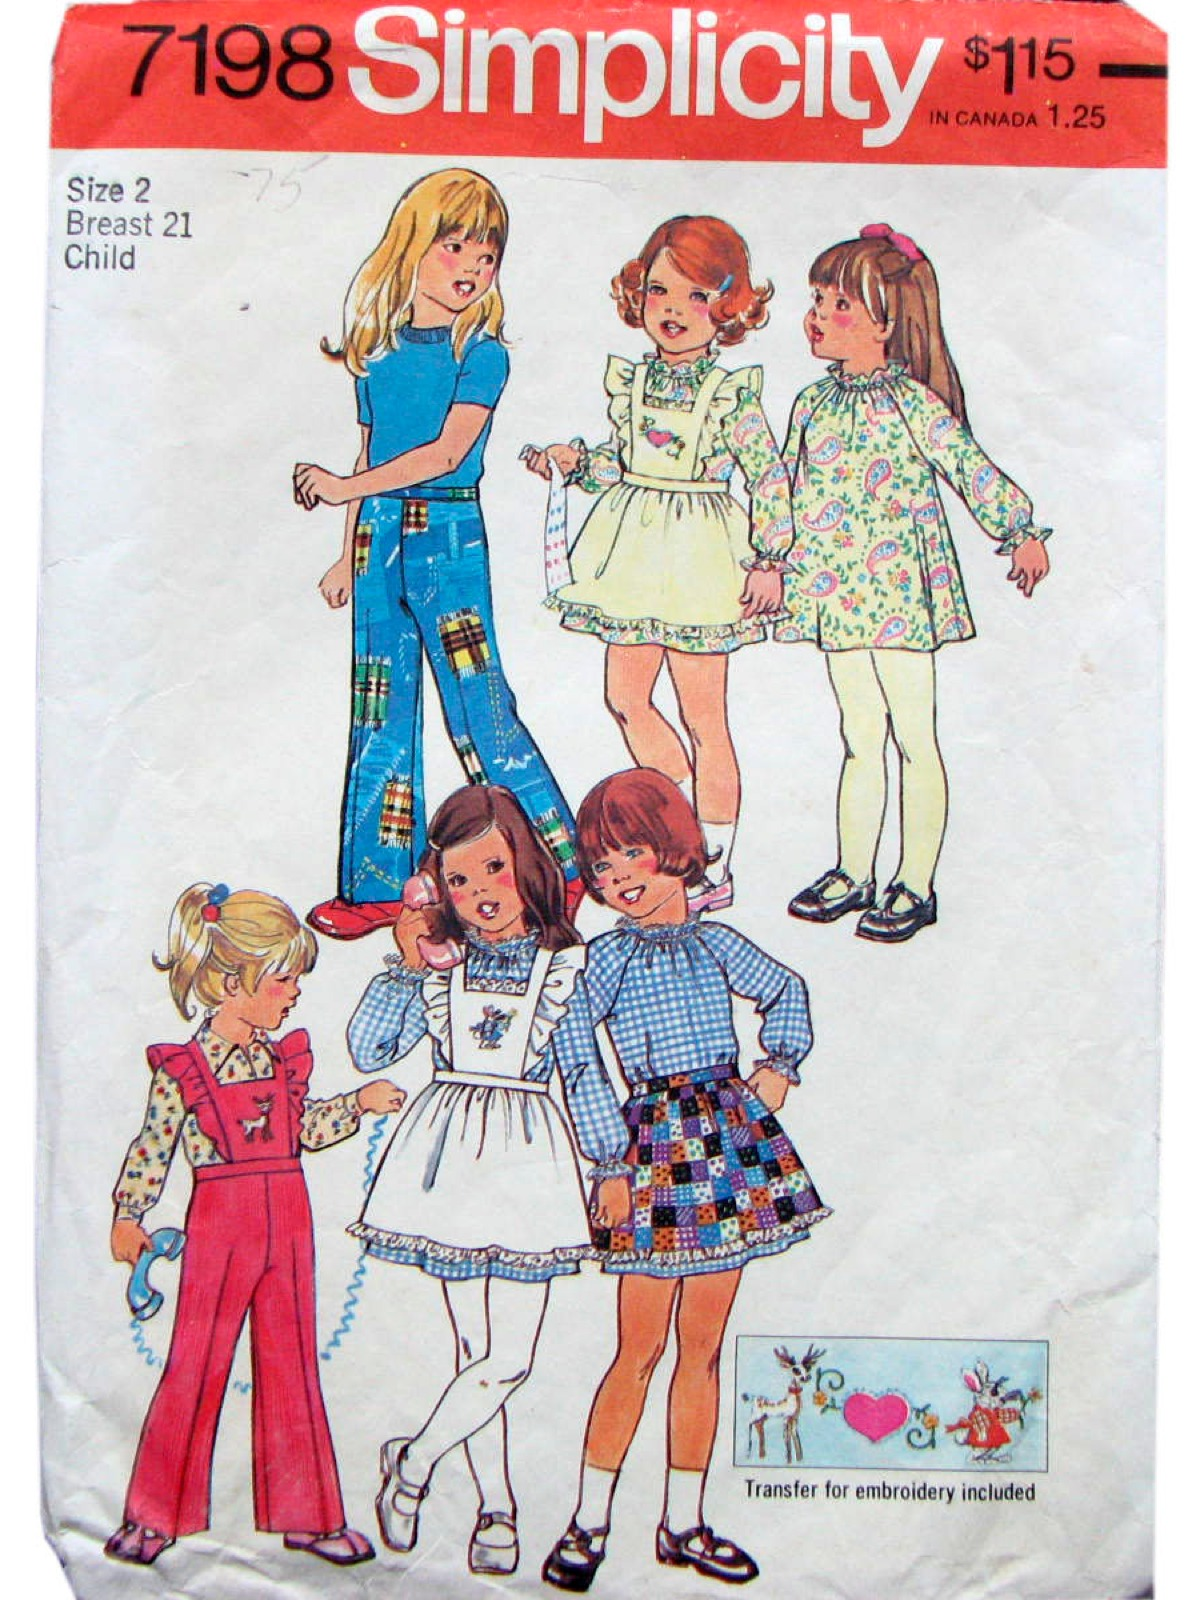 1970 S Vintage Simplicity 7198 Sewing Pattern 70s